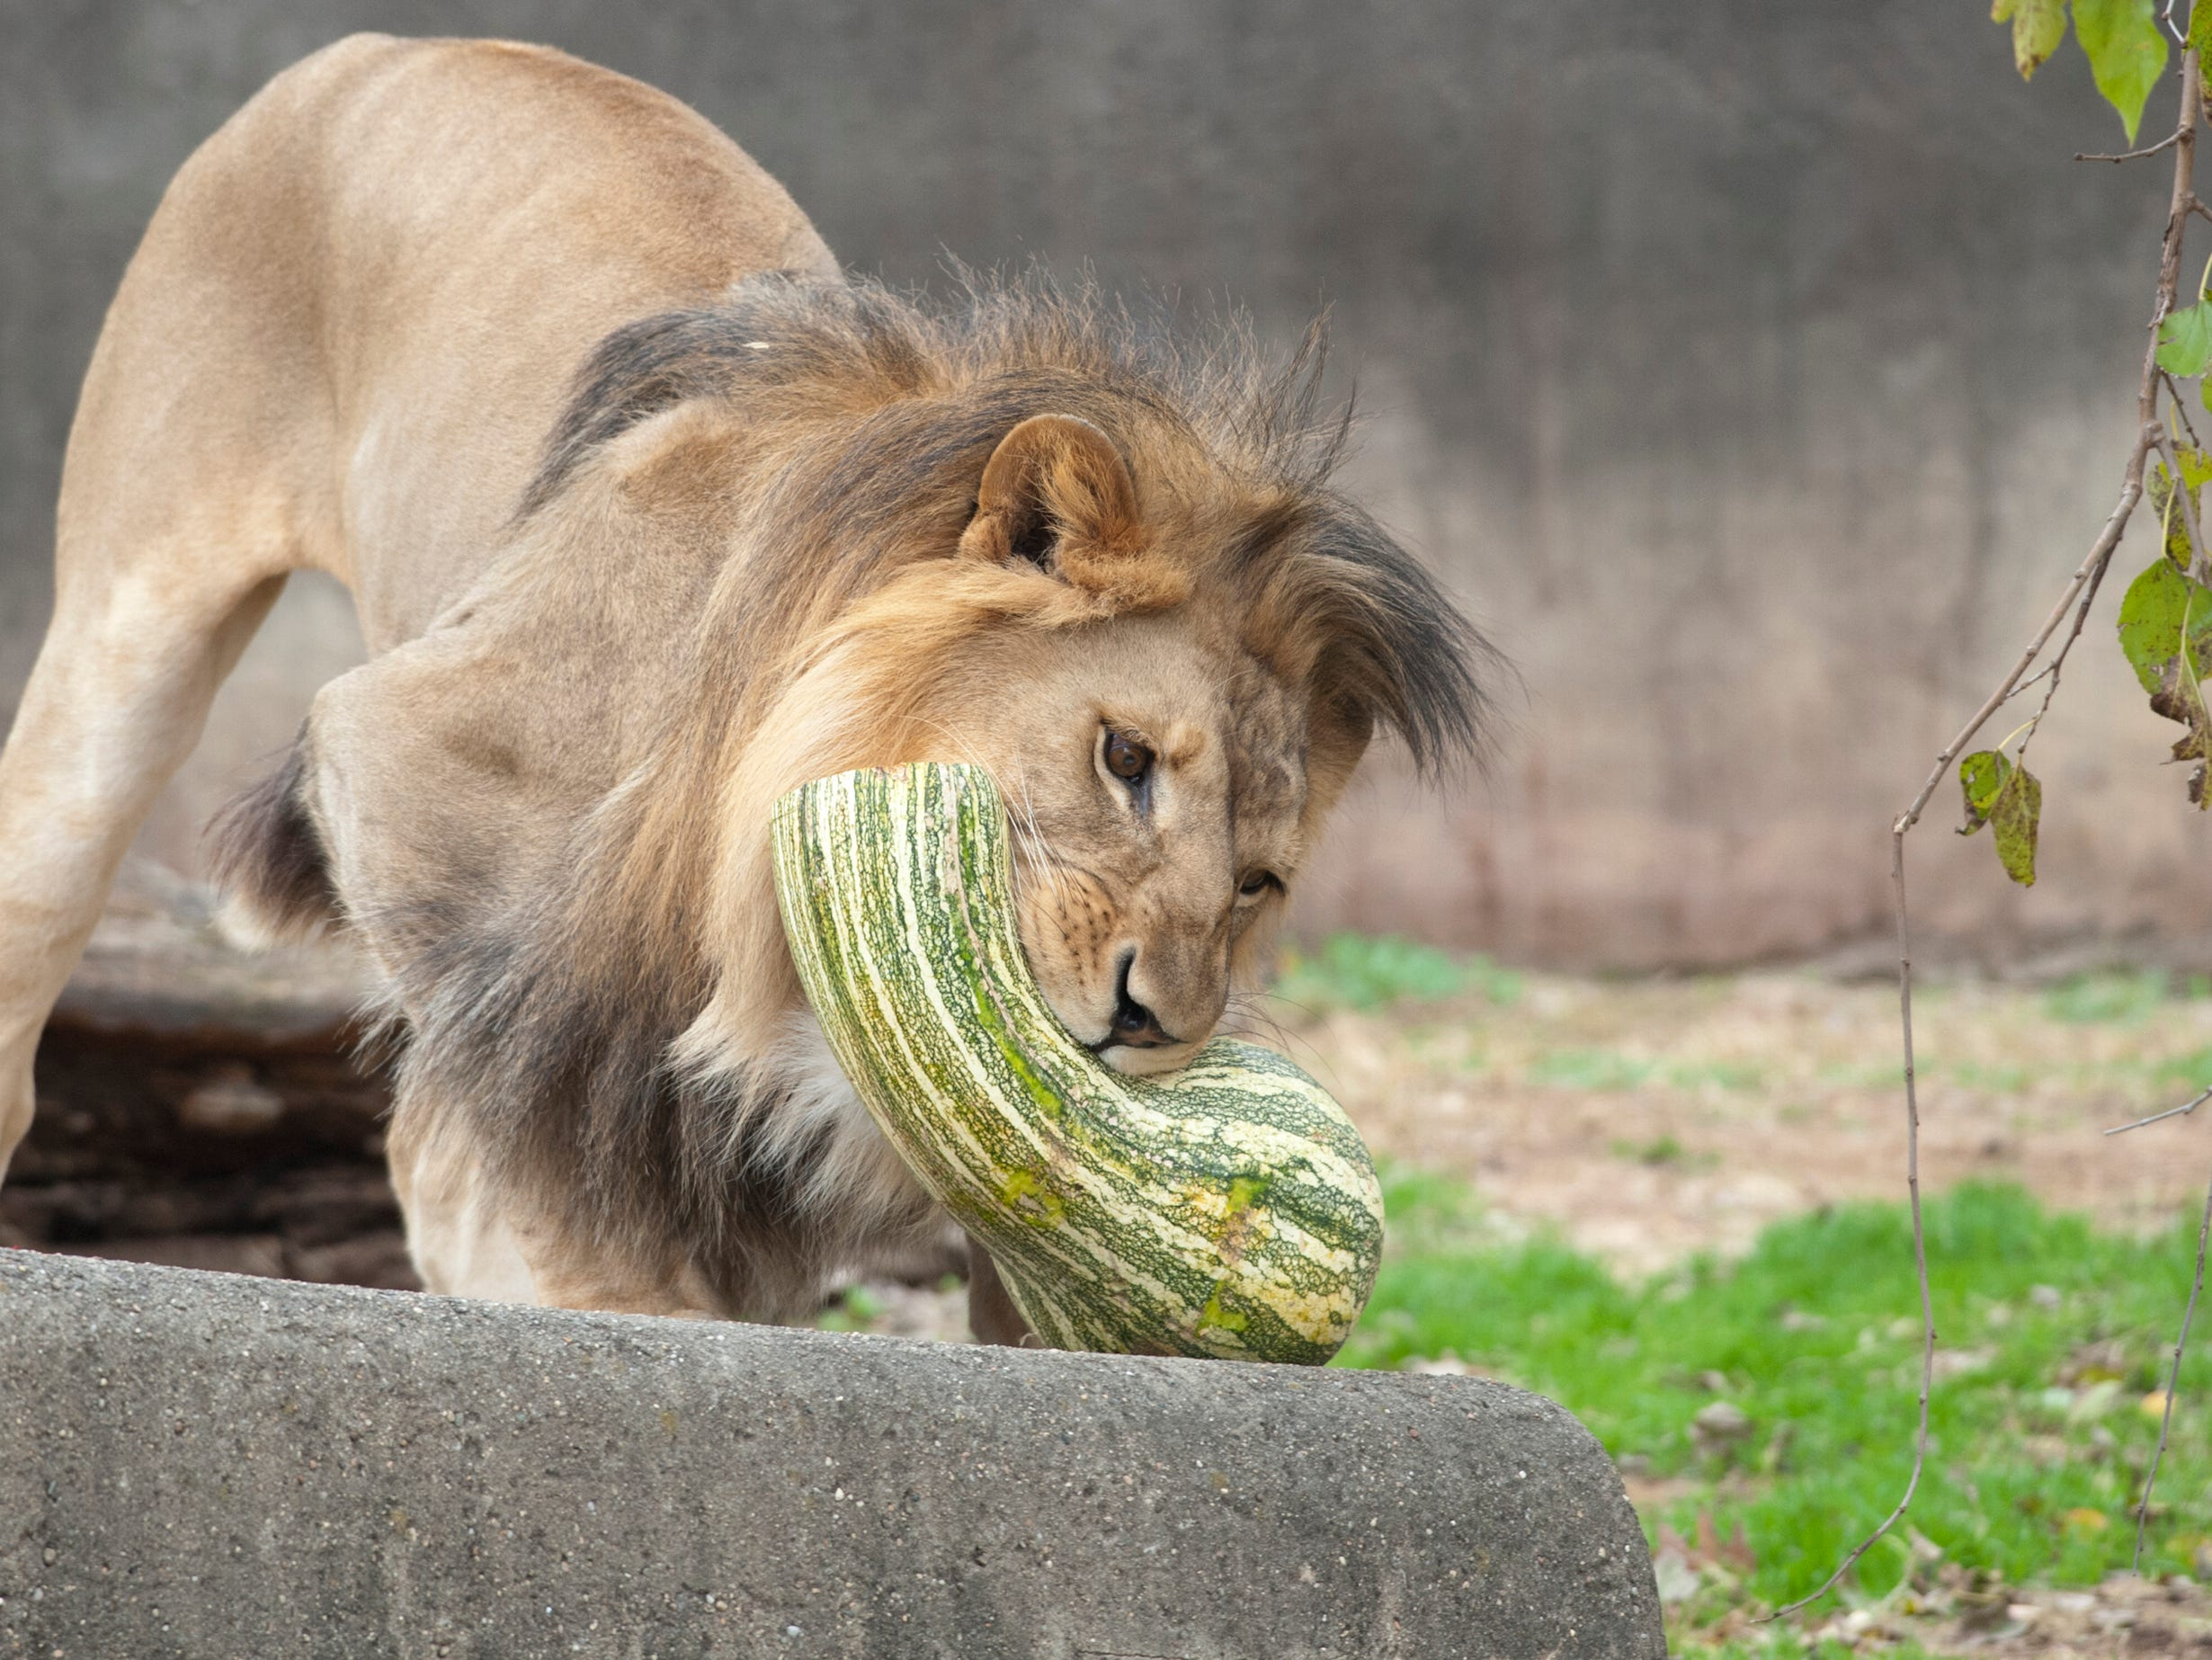 Siyanda, a 3-yr-old male lion shakes a gourd at the Louisville Zoo's annual pumpkin smash. The pumpkins being fed to the animals are from the zoo's Halloween event. November 04, 2018